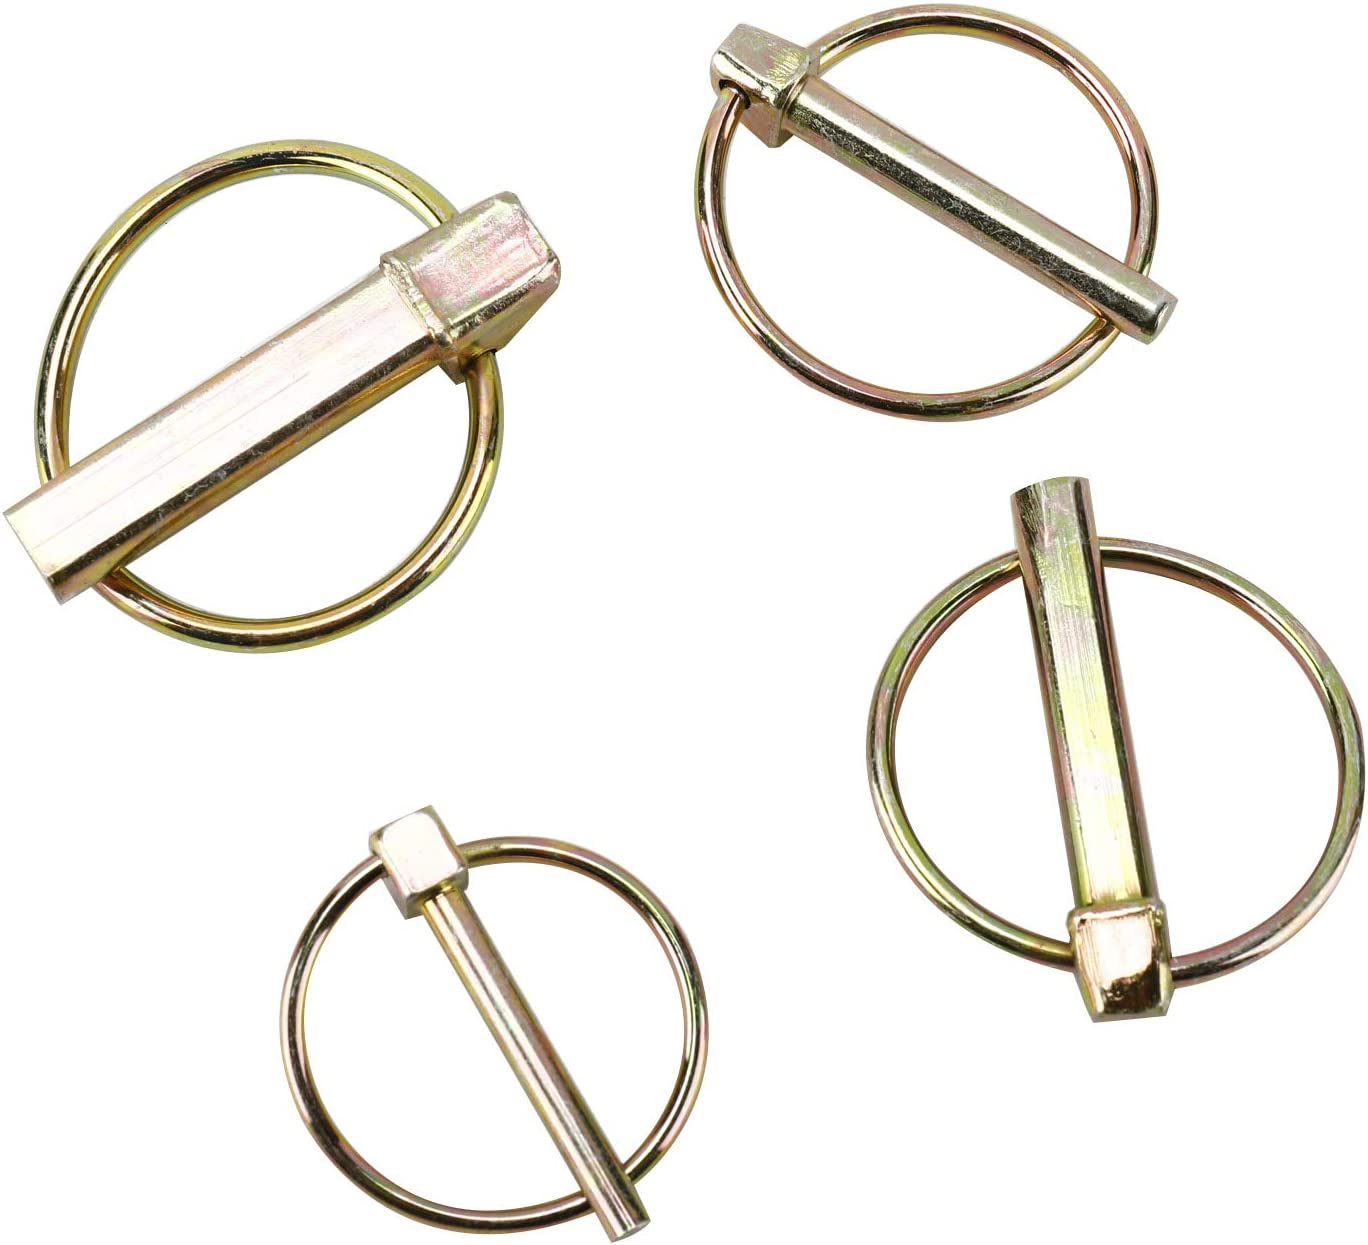 DasMarine 50 PCS Heavy Duty Tractor Linch Pin,Linch Pin with Ring for Farm Trailers Wagons Tractor Trolley Horsebox Lawn Garden,3//16 Dia,1//4 Dia,5//16 Dia,7//16 Dia.